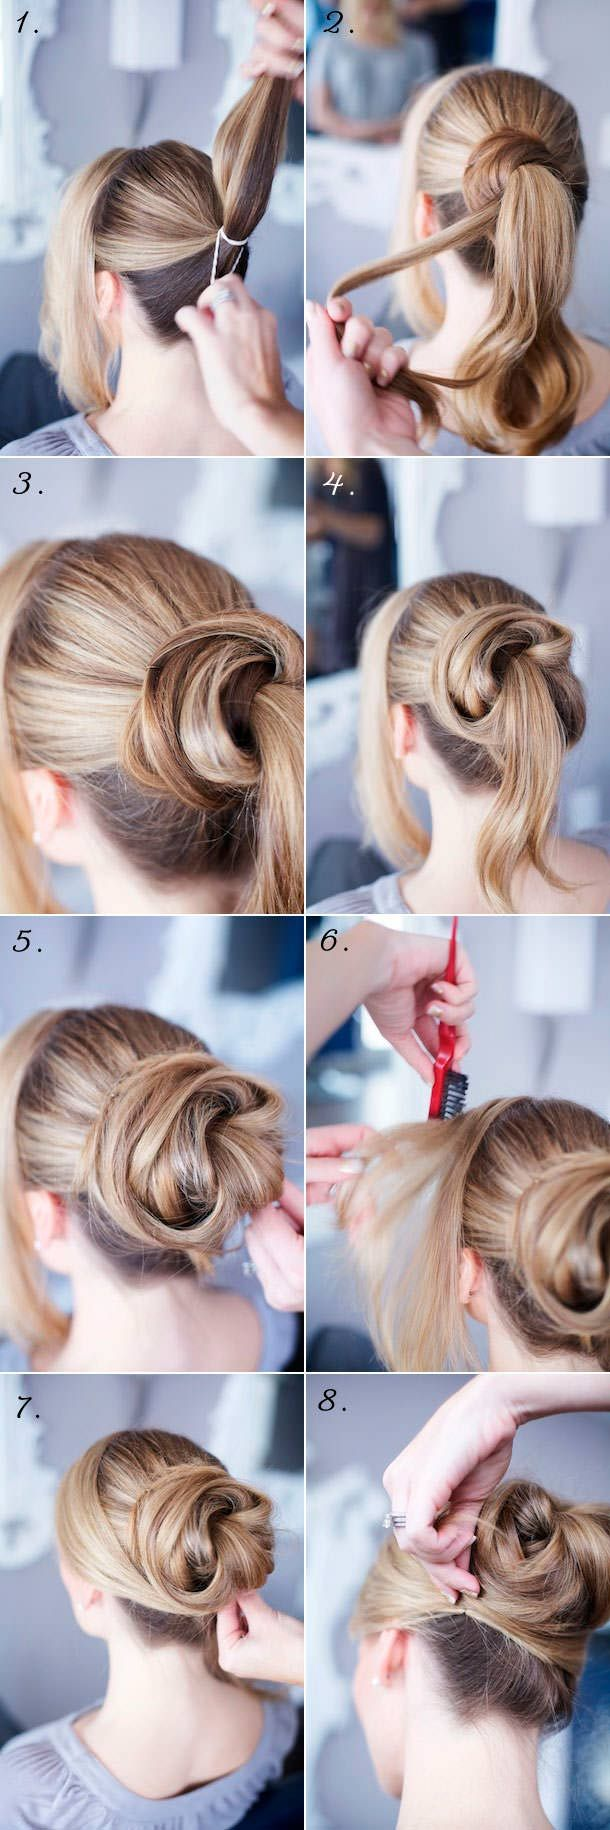 Peachy 1000 Ideas About Winter Hairstyles On Pinterest Bobby Pin Short Hairstyles Gunalazisus